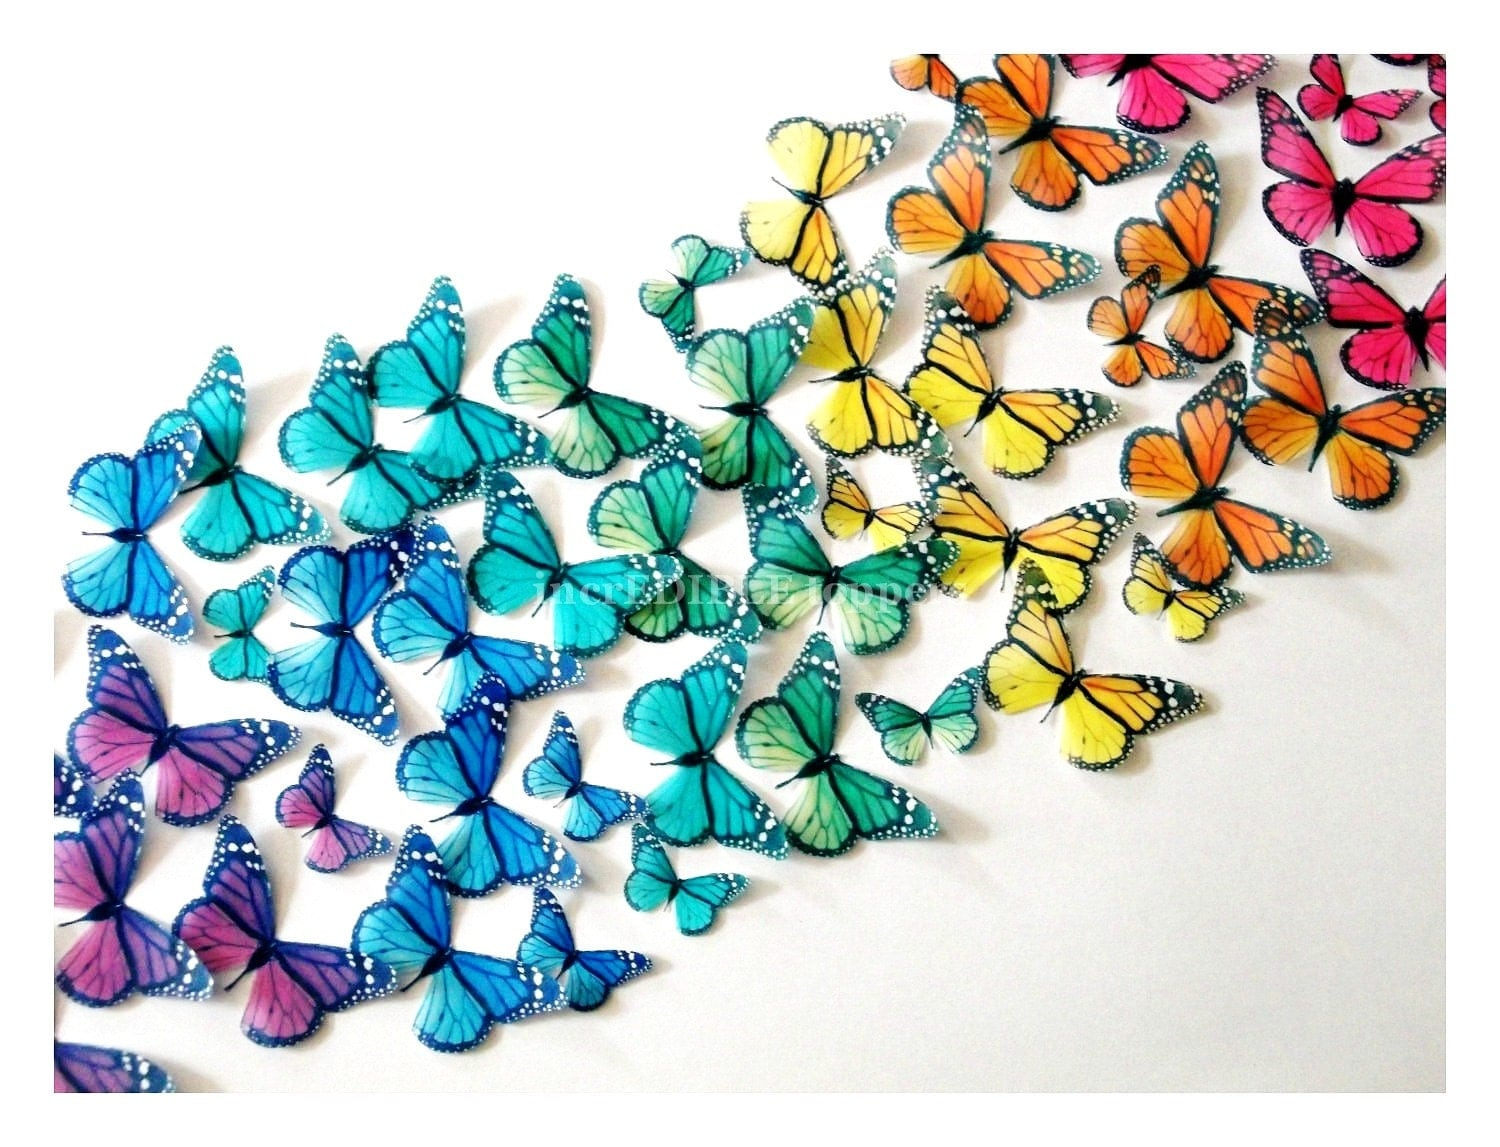 Wedding Cake Topper EDIBLE BUTTERFLIES by incrEDIBLEtoppers